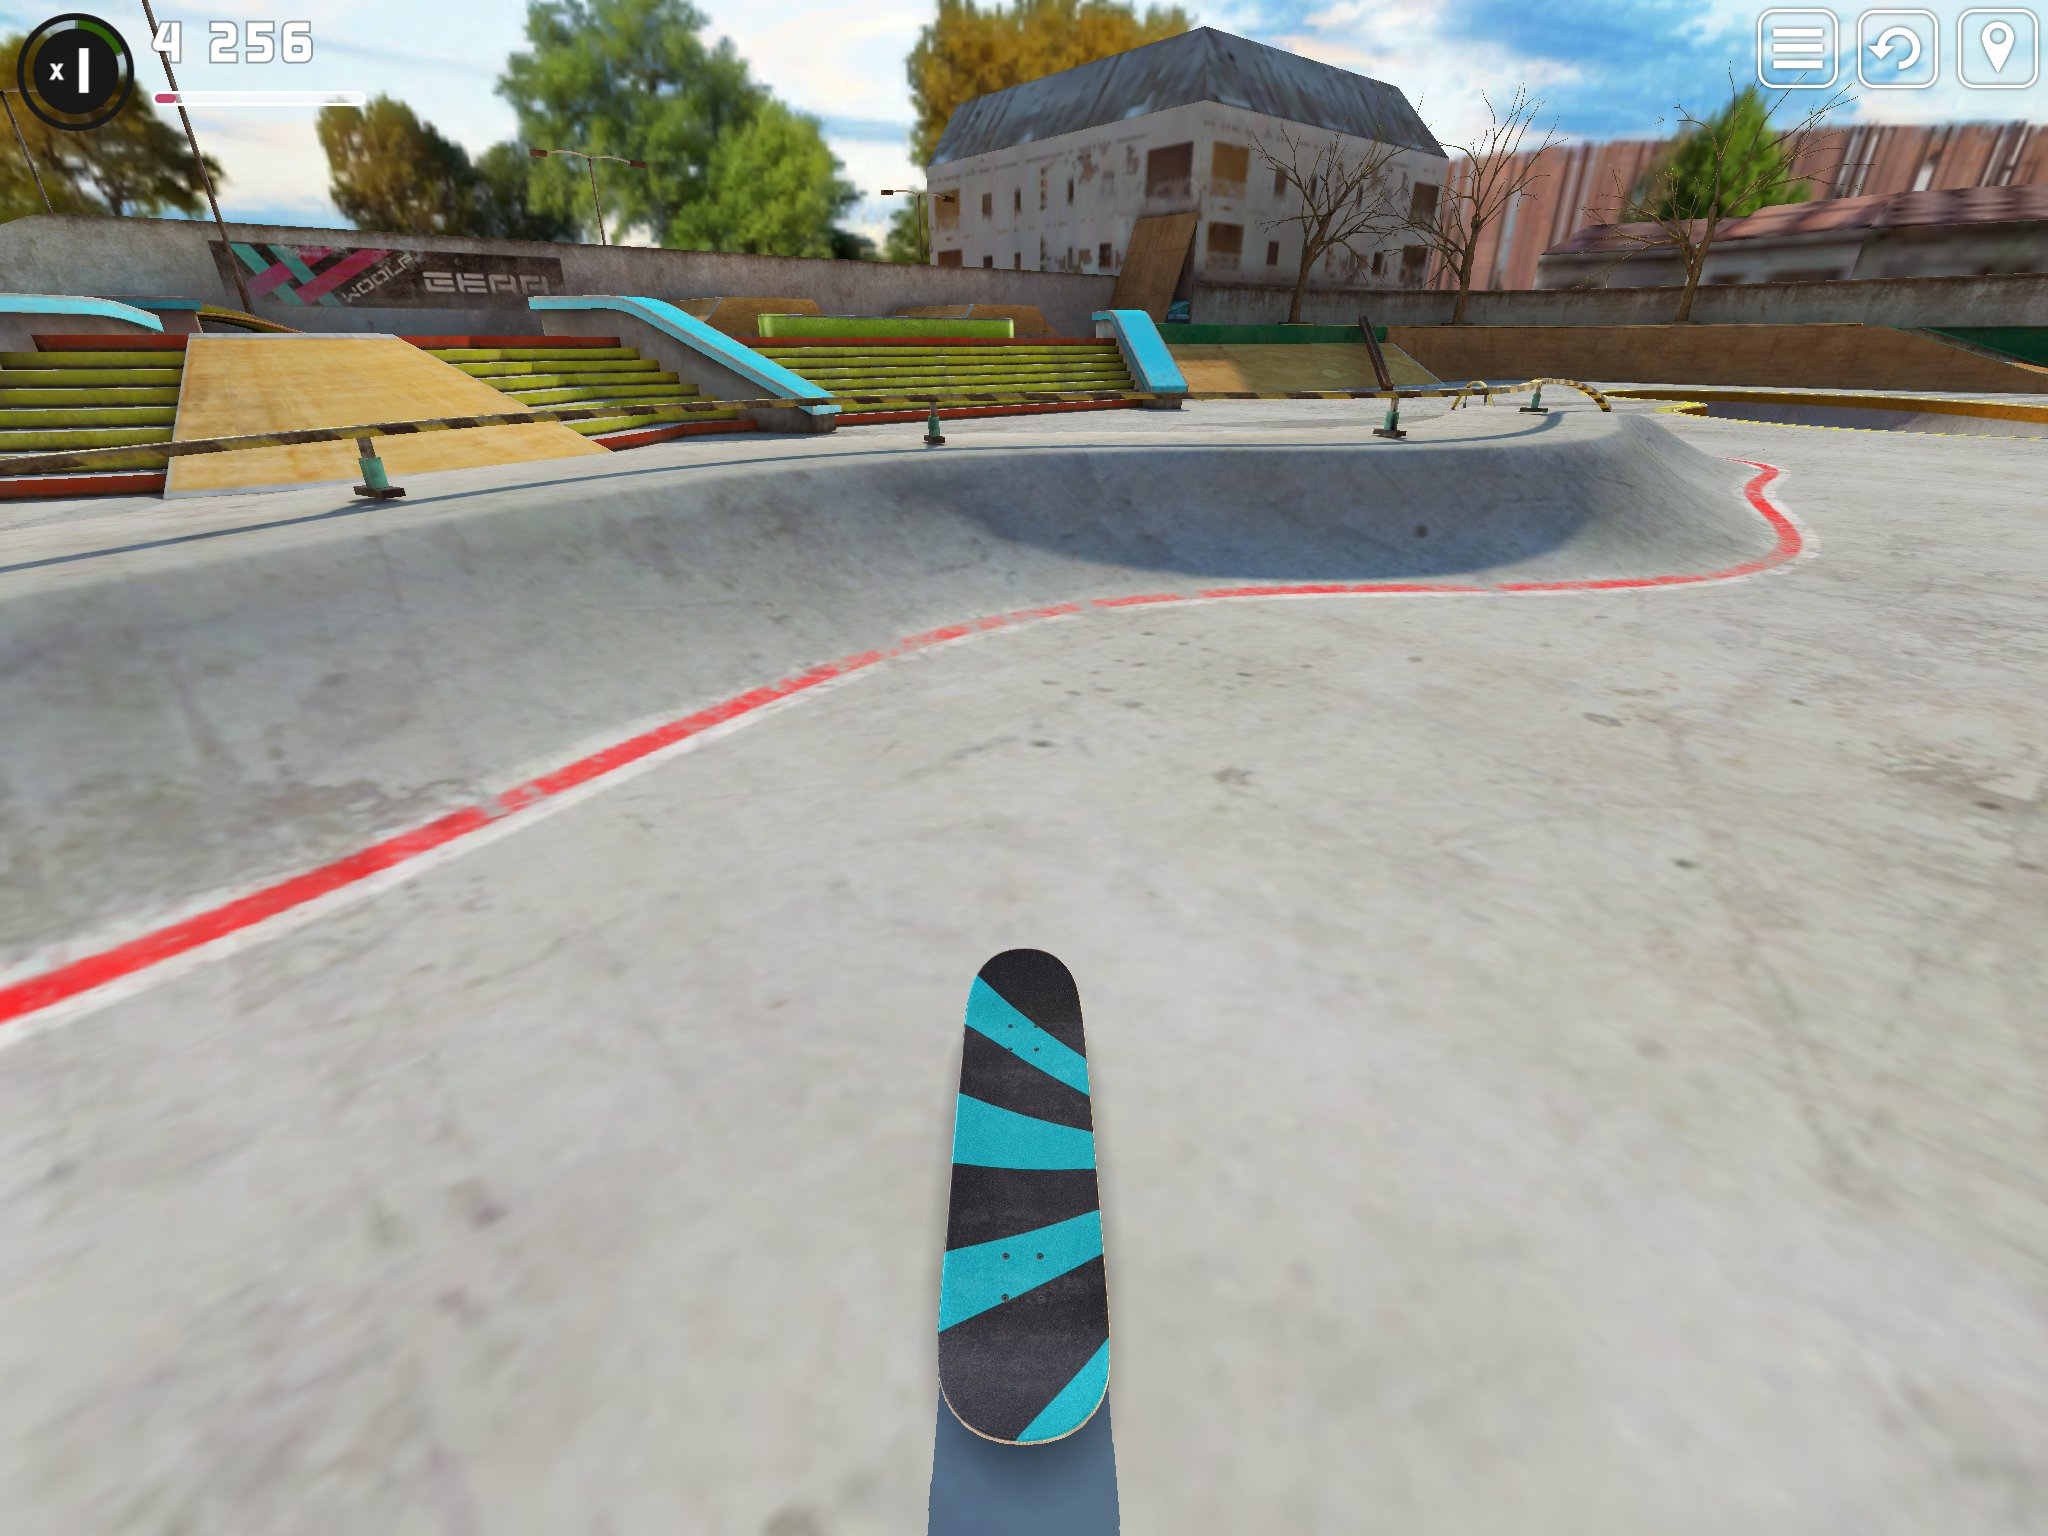 Illusion Labs has just added another skatepark to Gold Award-winning finger-flicking game Touchgrind Skate 2